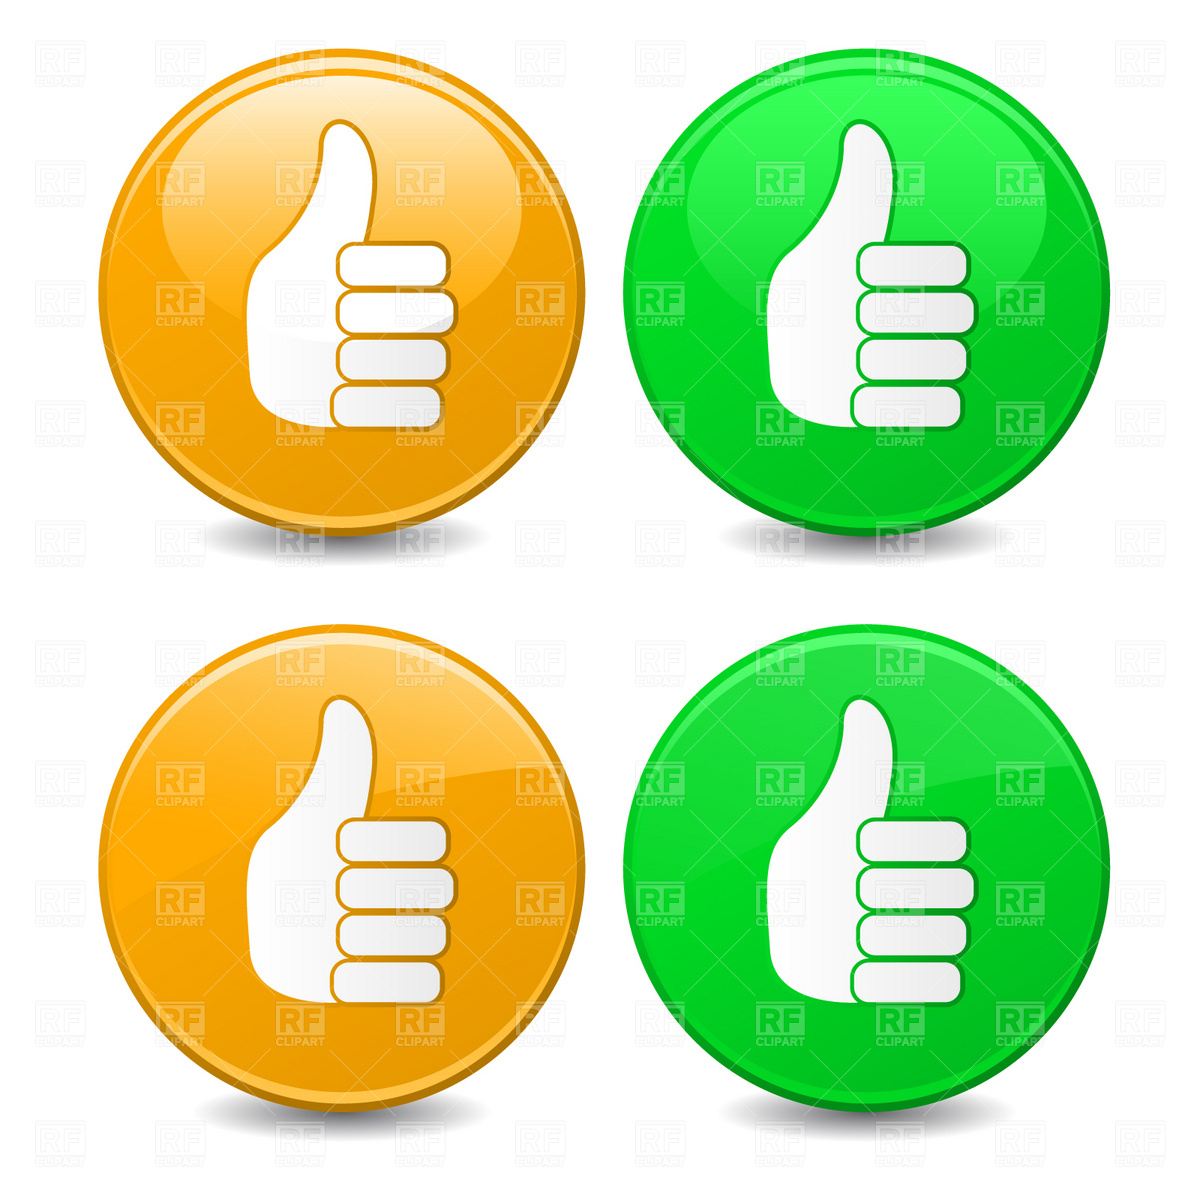 1200x1200 Thumbs Up Sign Royalty Free Vector Clip Art Image